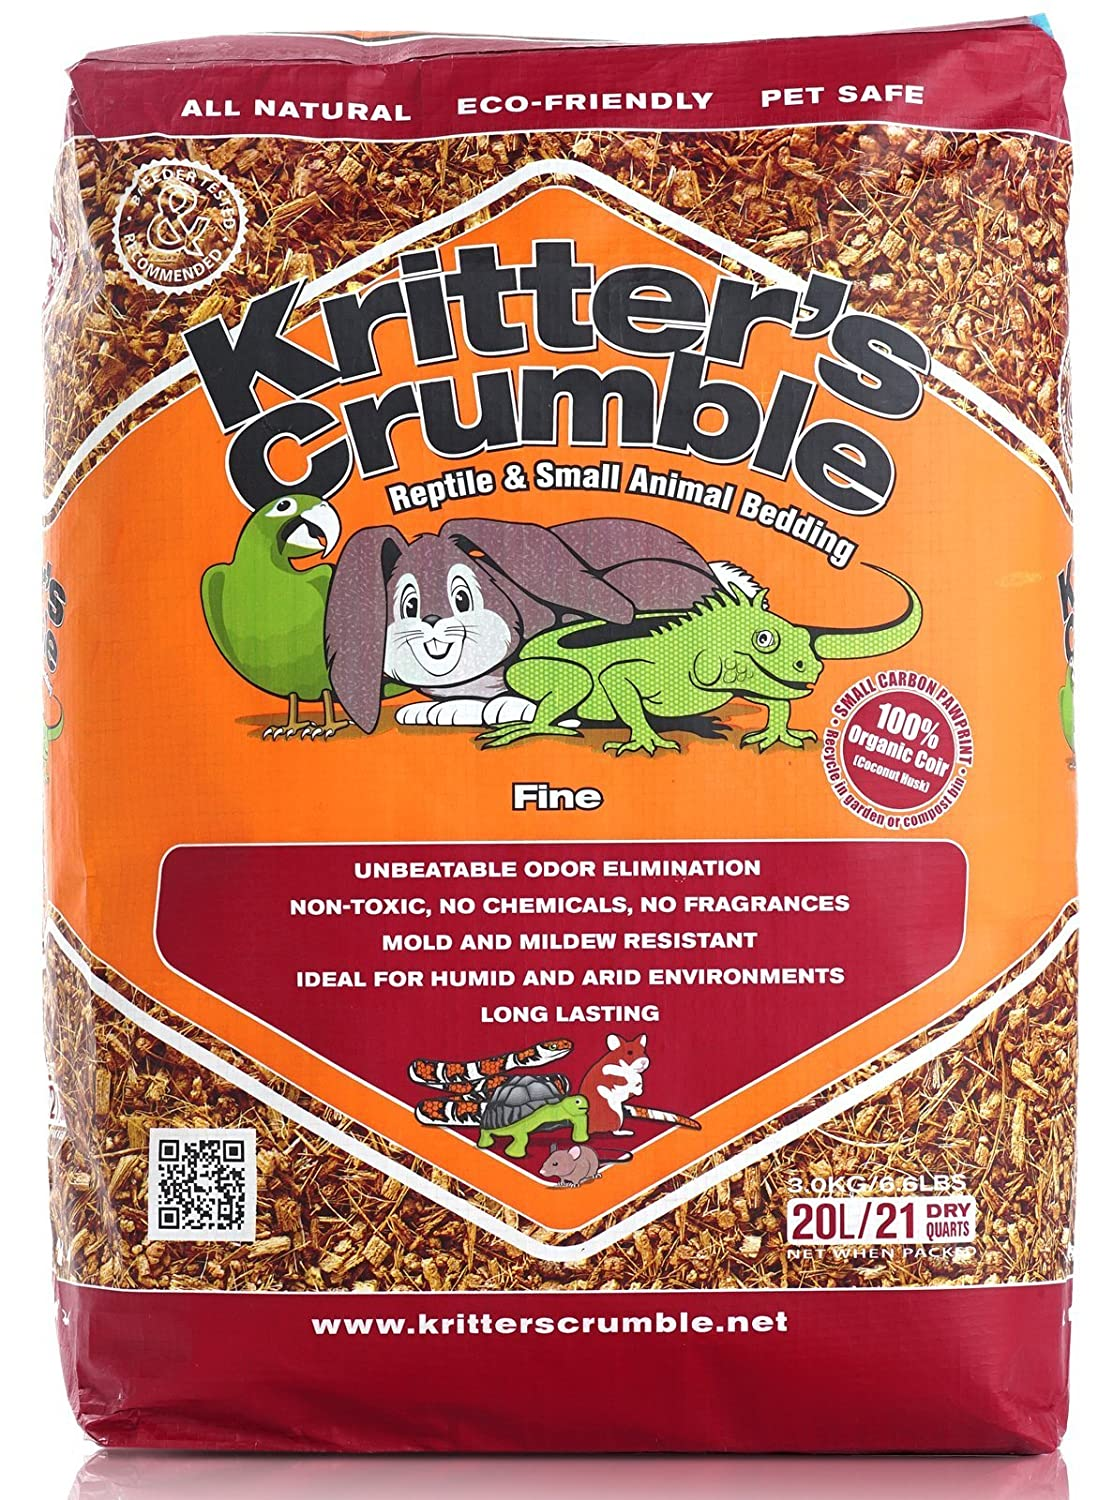 Kritter's Crumble All Natural Coconut Husk Fiber Reptile Substrate and Small Animal Bedding - Fine, 21 quarts Kitty Crumble CSP-20LT-KTRF